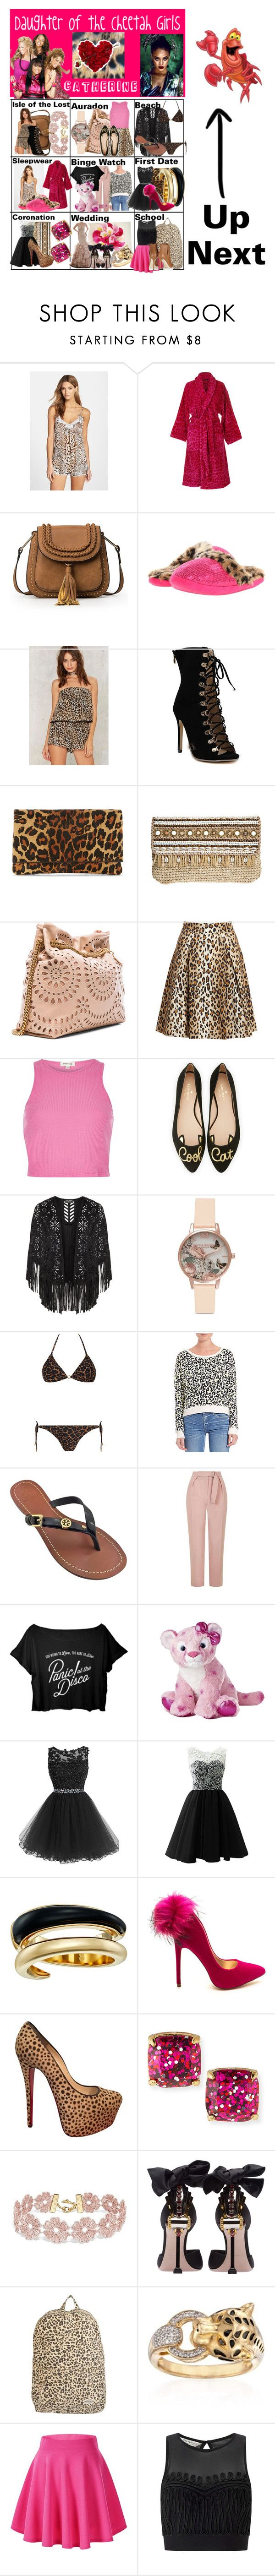 """Daughter of the Cheetah Girls // Next Up: Son of Sebastian (The Little Mermaid)"" by disnerd-101 ❤ liked on Polyvore featuring Sebastian Professional, Oscar de la Renta, Roberto Cavalli, M&F Western, Skemo, STELLA McCARTNEY, Carolina Herrera, River Island, Kate Spade and Olivia Burton"